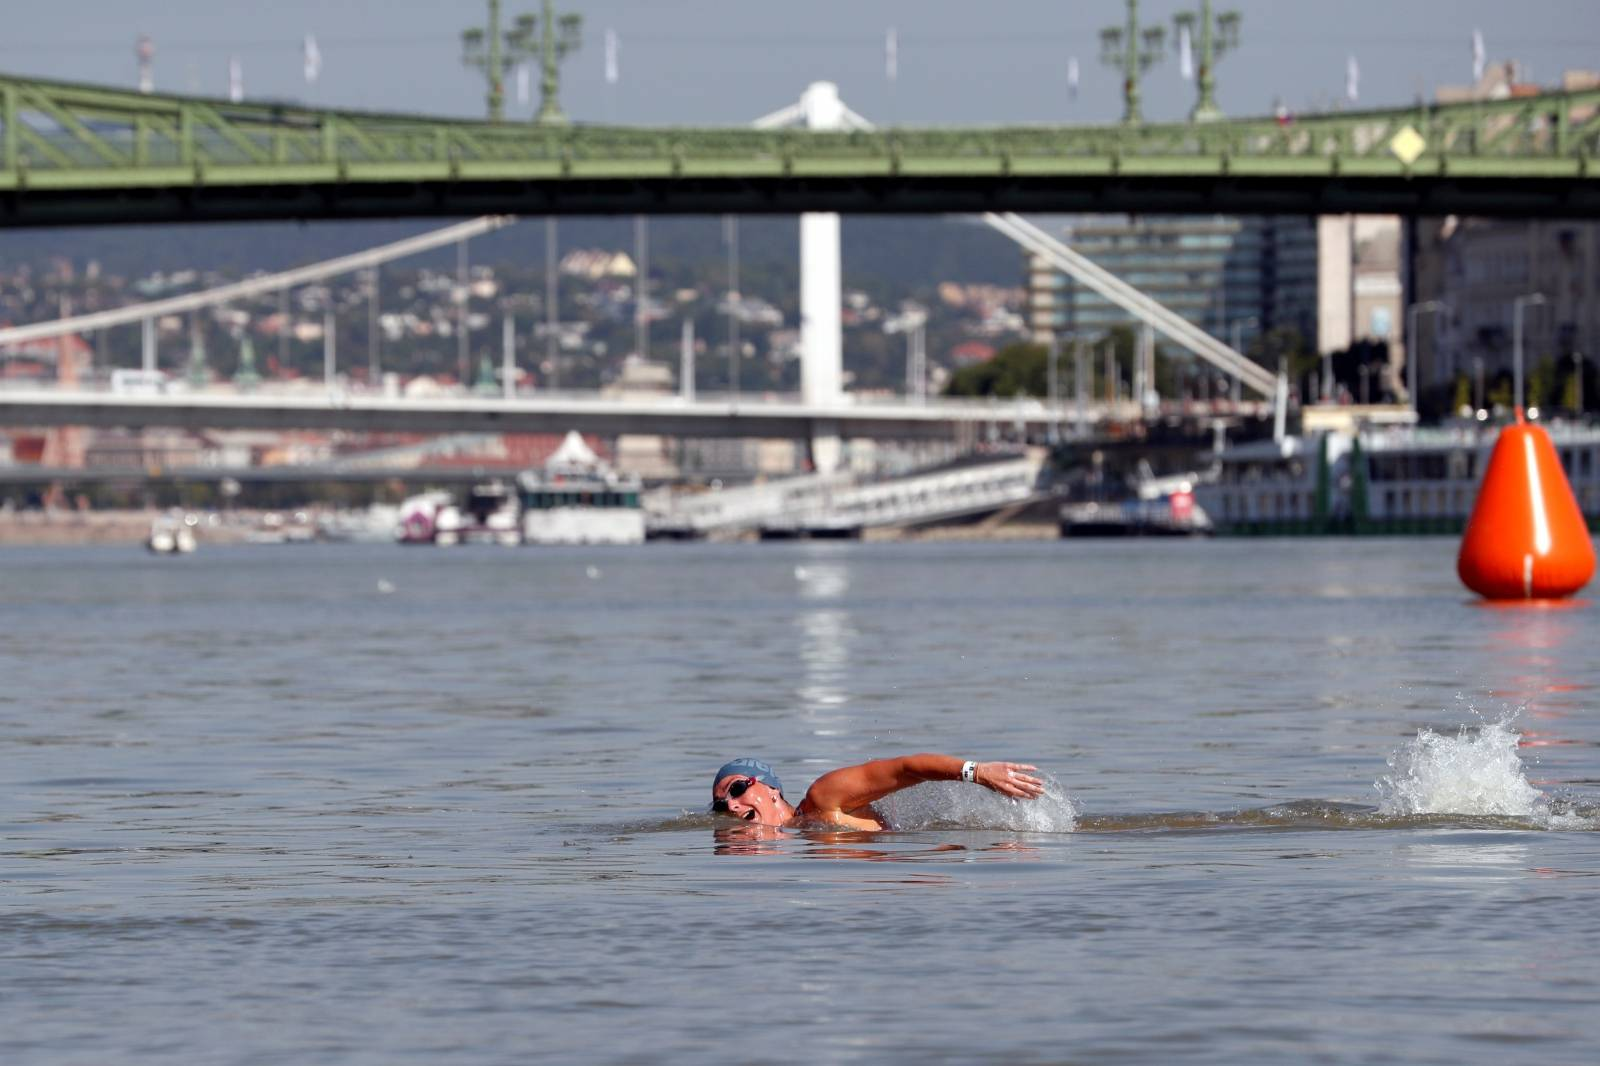 Participants swim across the Danube River during the Budapest Urban Games in Budapest